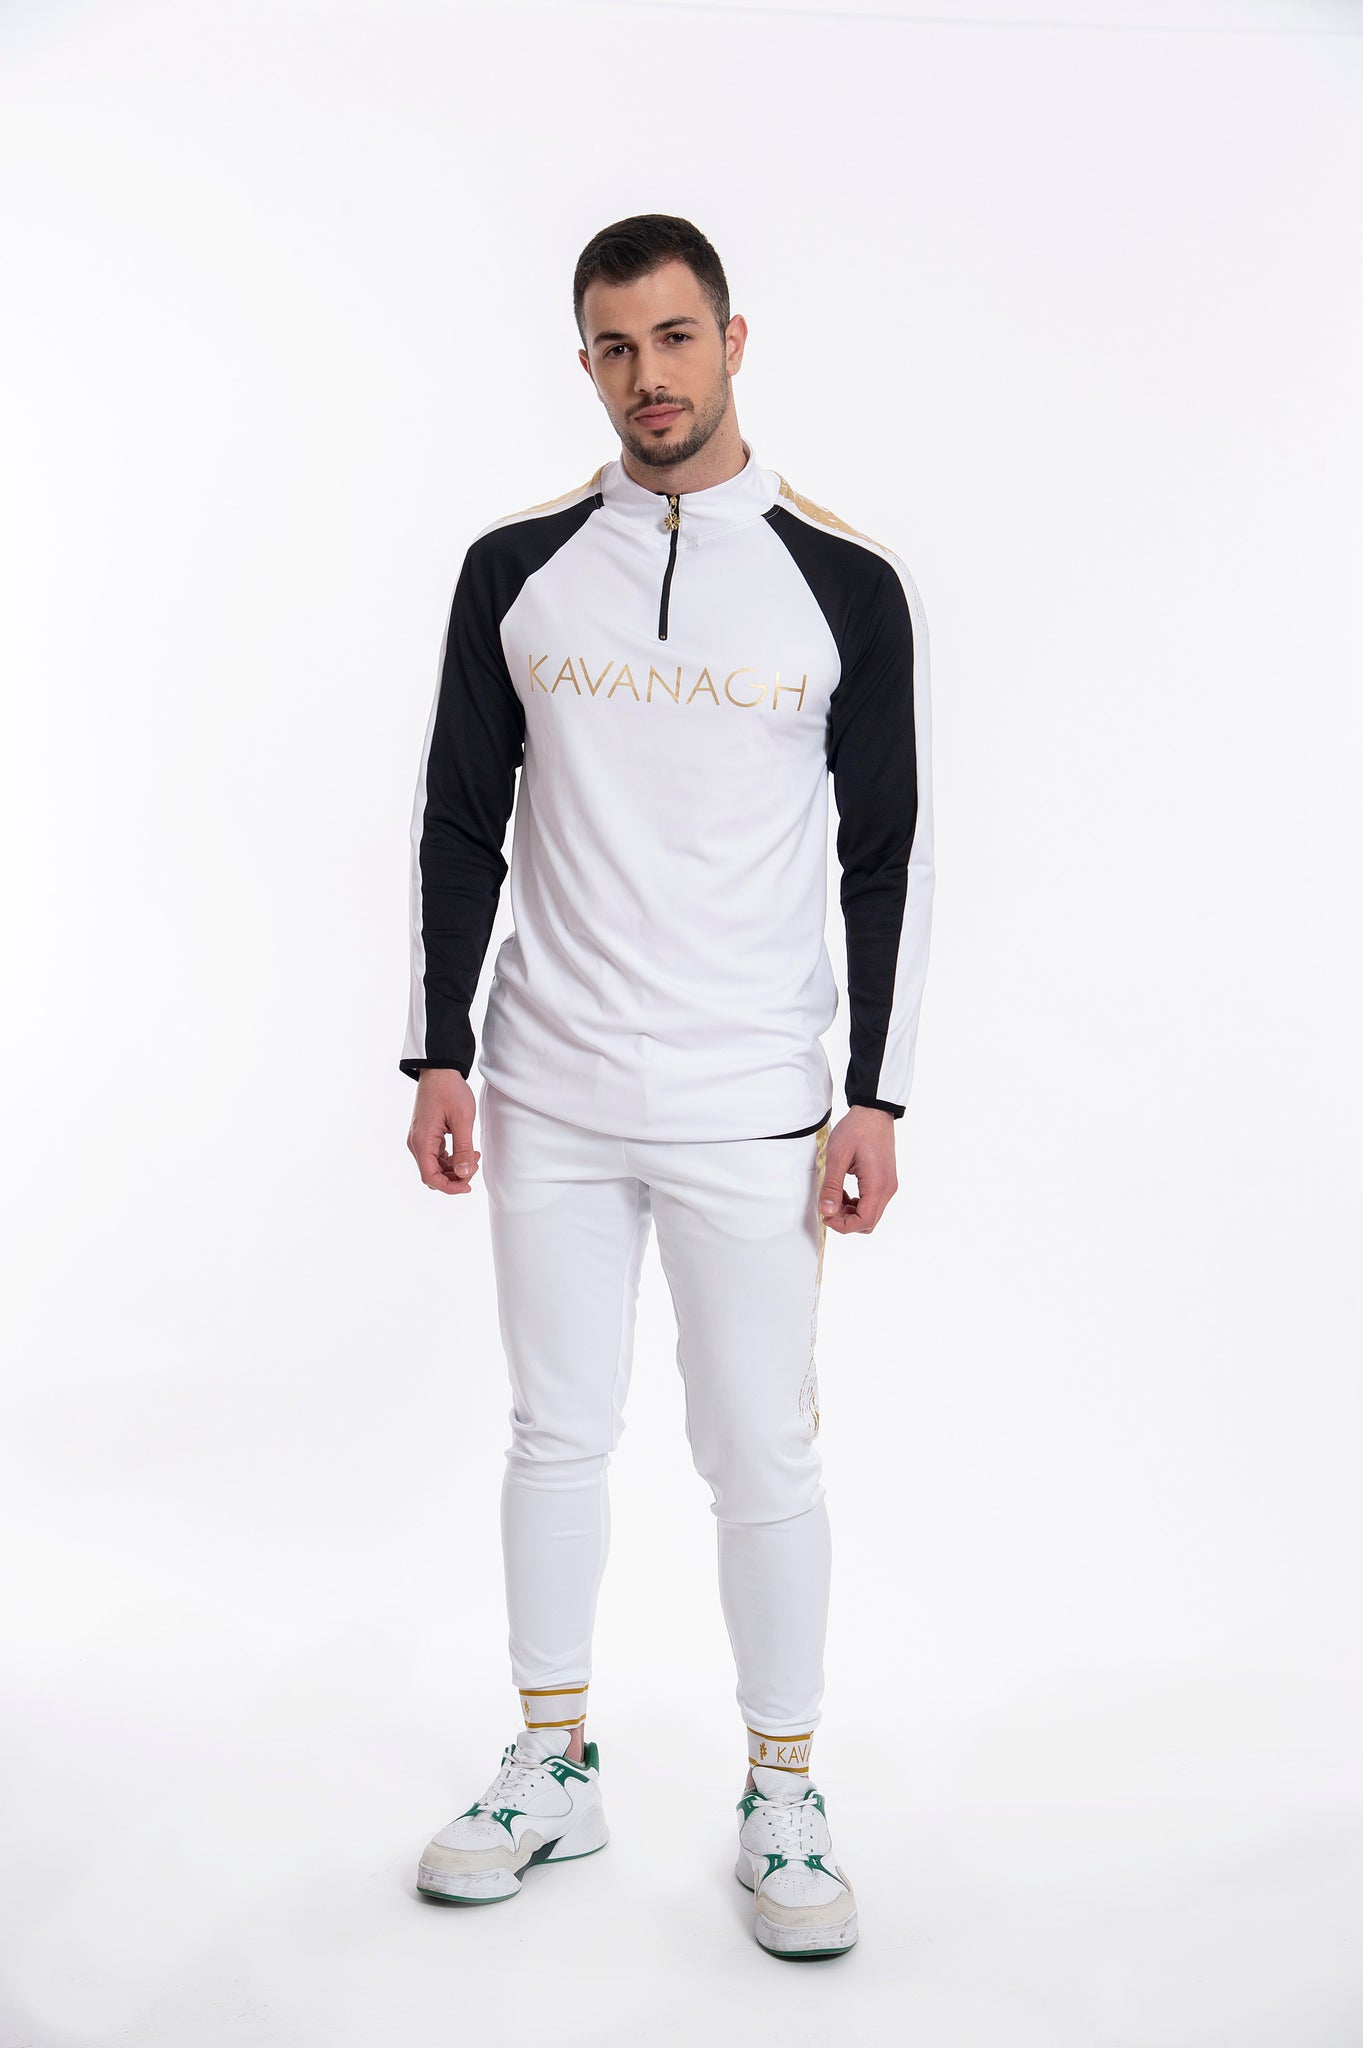 Kavanagh elasticated tracksuits with side stripe